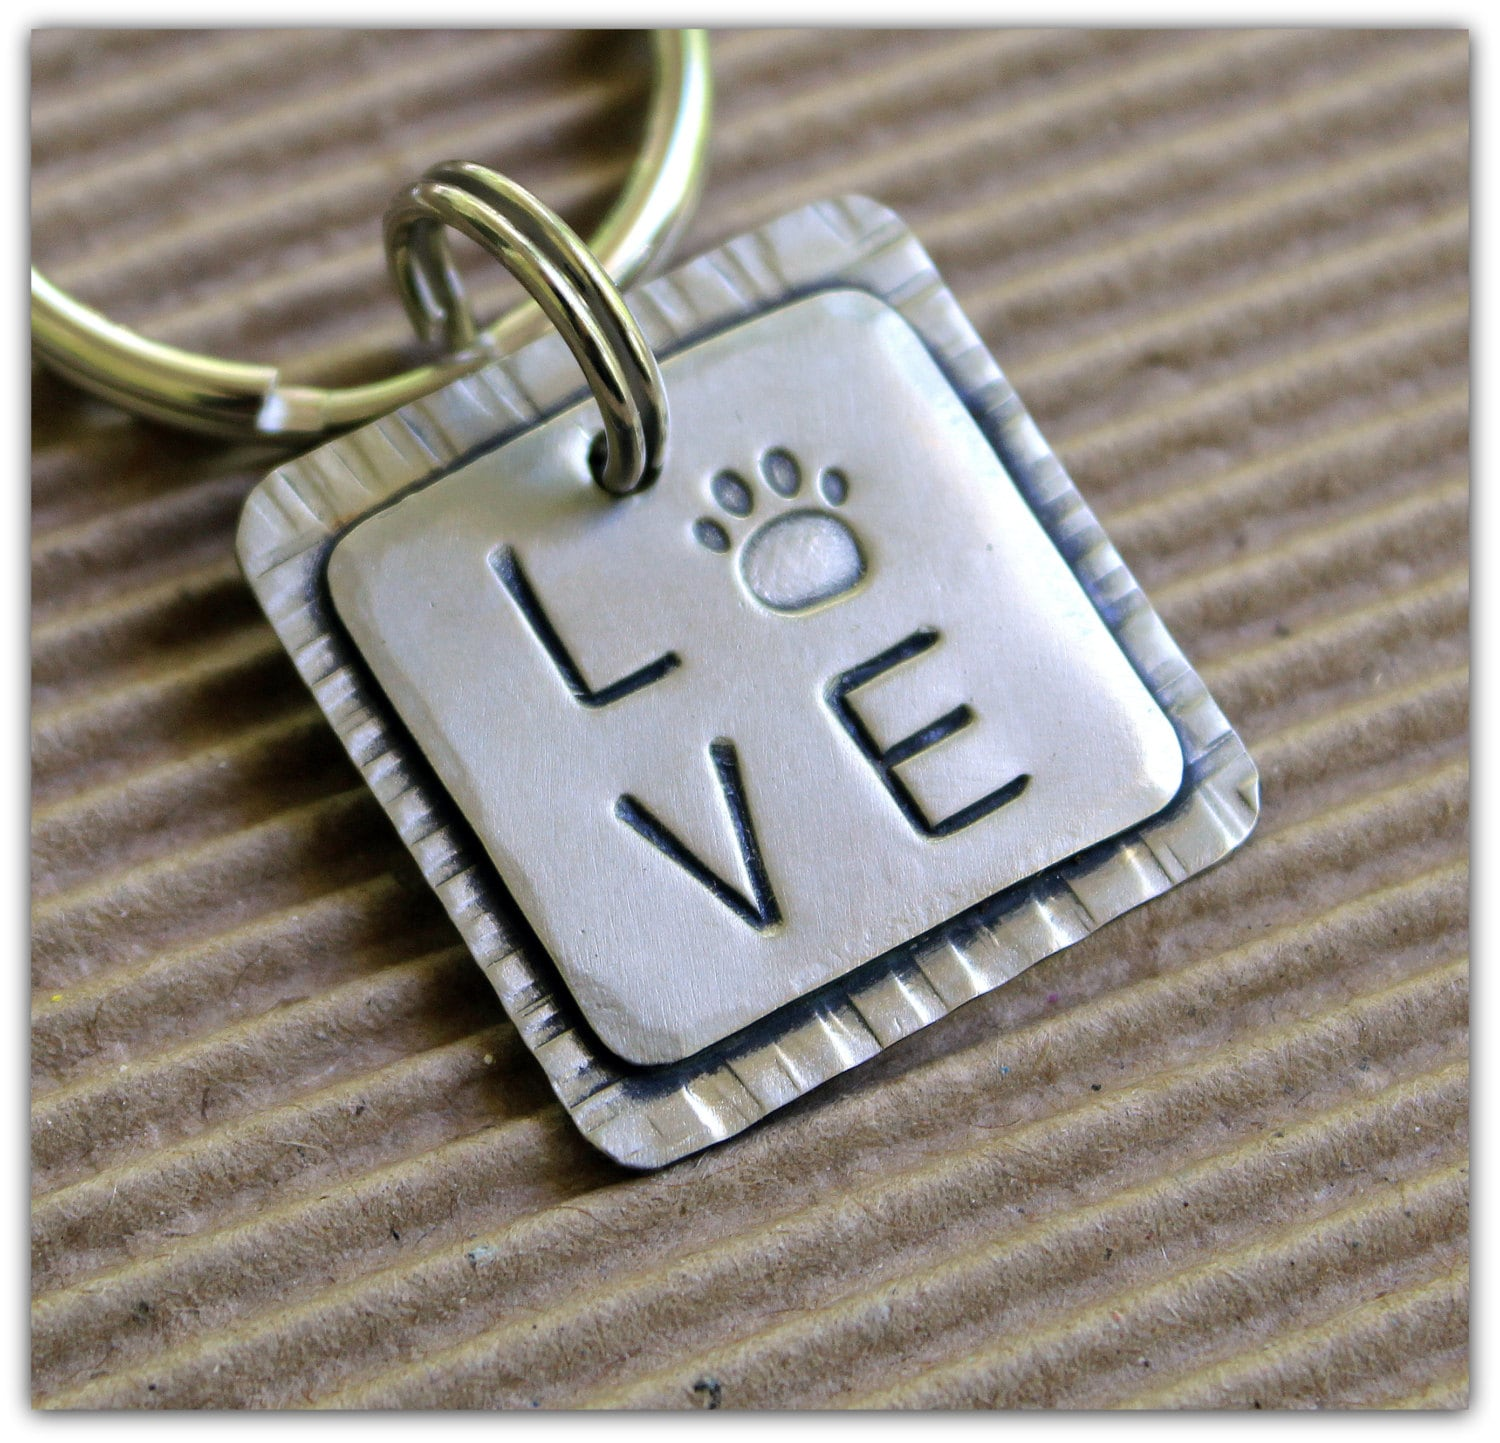 Pet Carrier Olx Love Dogs Key Chain Key Chain With Paw As Part Of The Word Love I Love My Dog